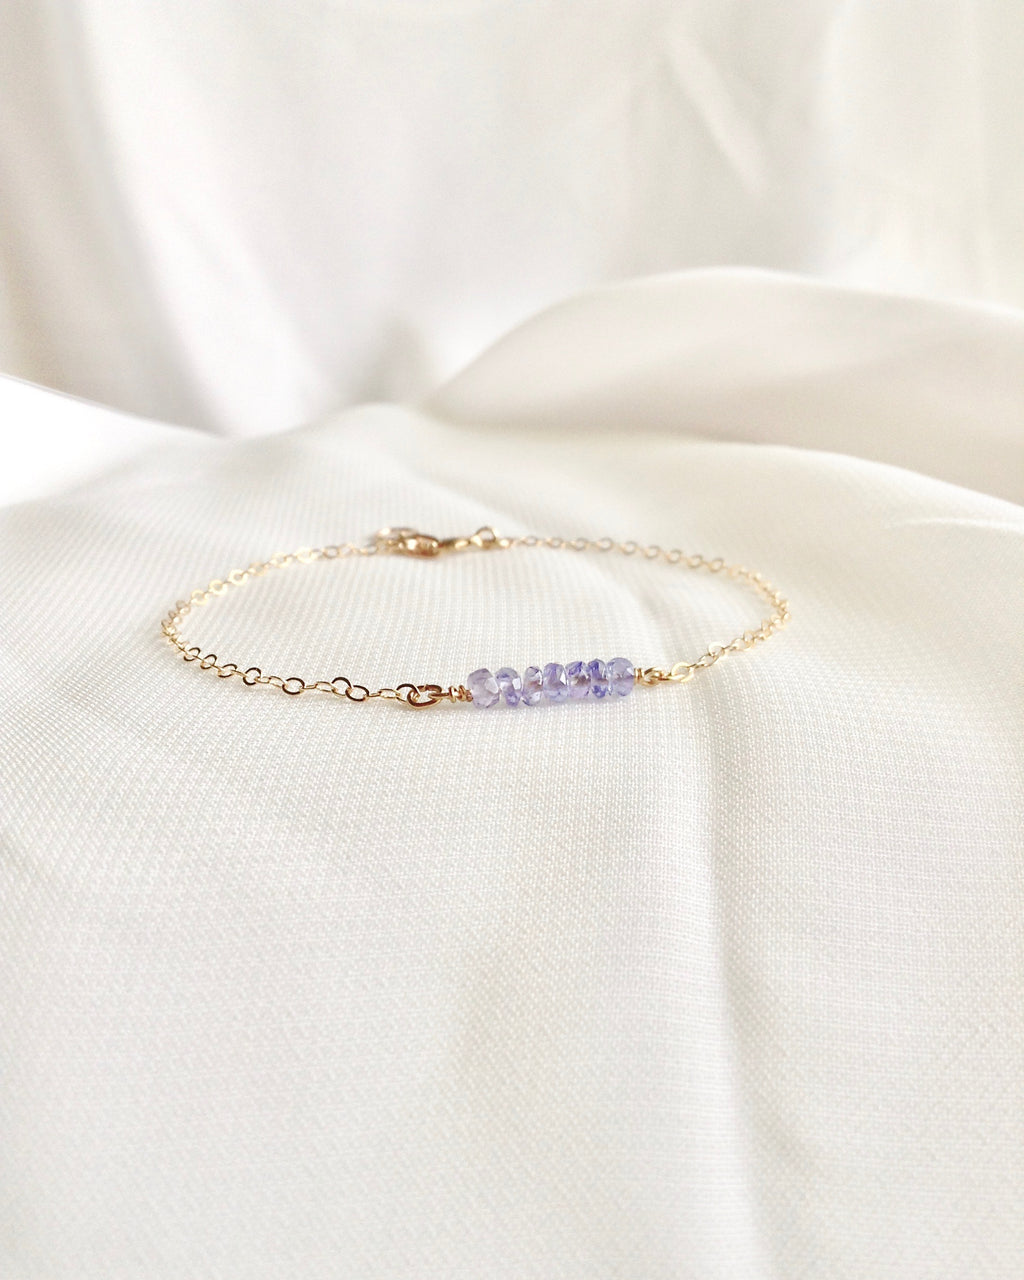 Tanzanite Bracelet in Gold Filled or Sterling Silver | IB Jewelry